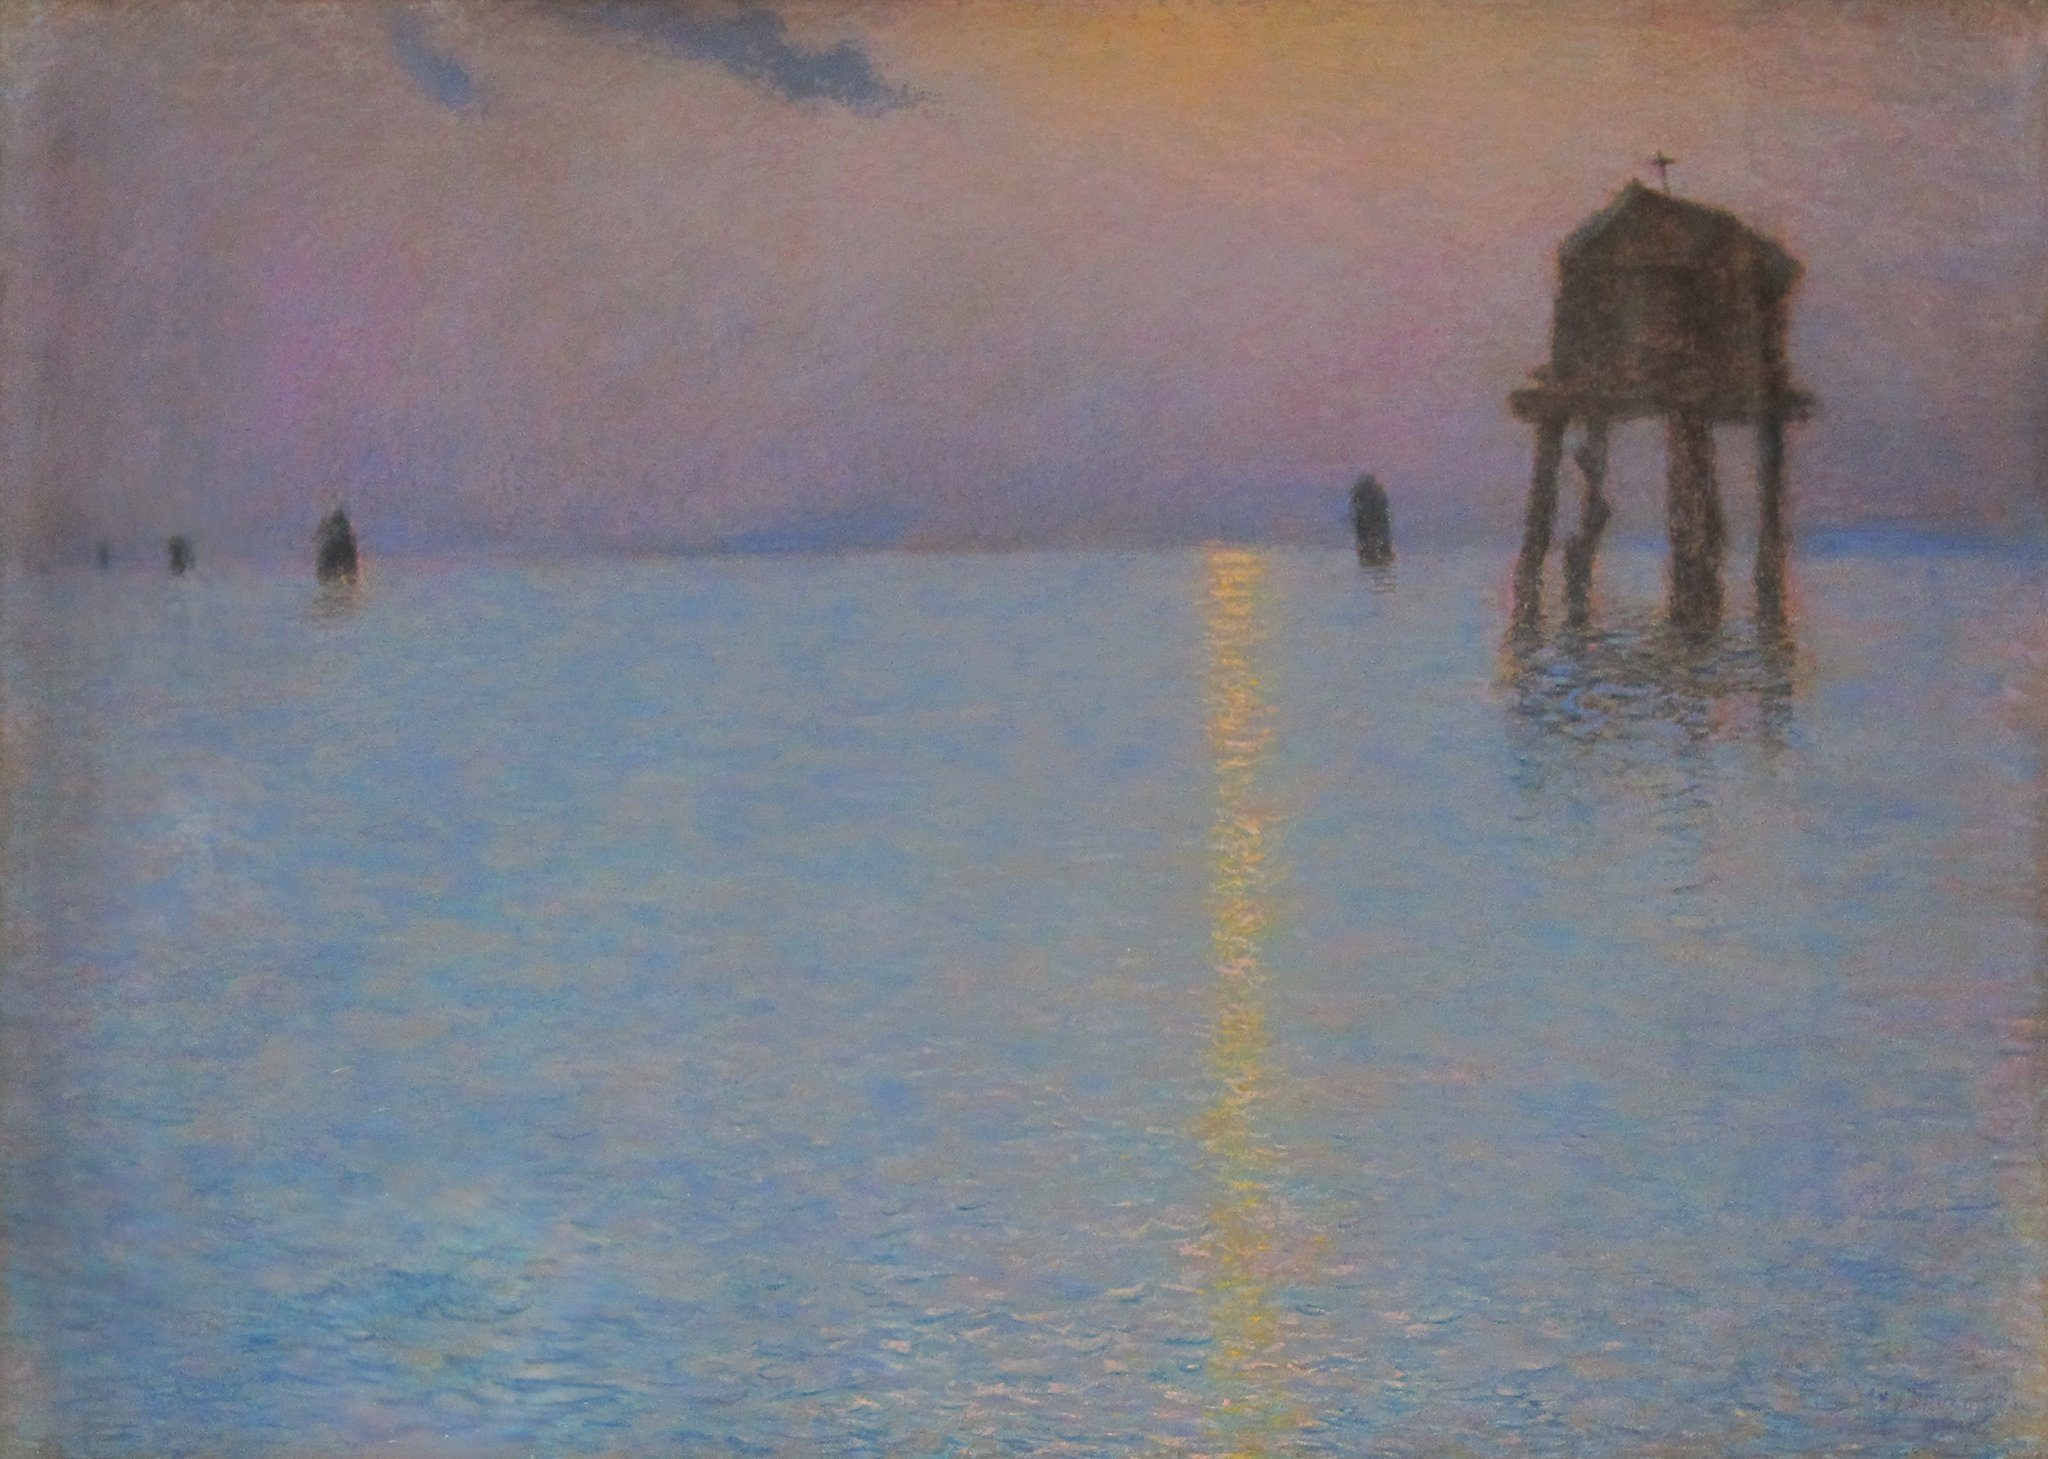 Lévy-Dhurmer, Lucien ~ Venice, View of the Lagoon at Dusk